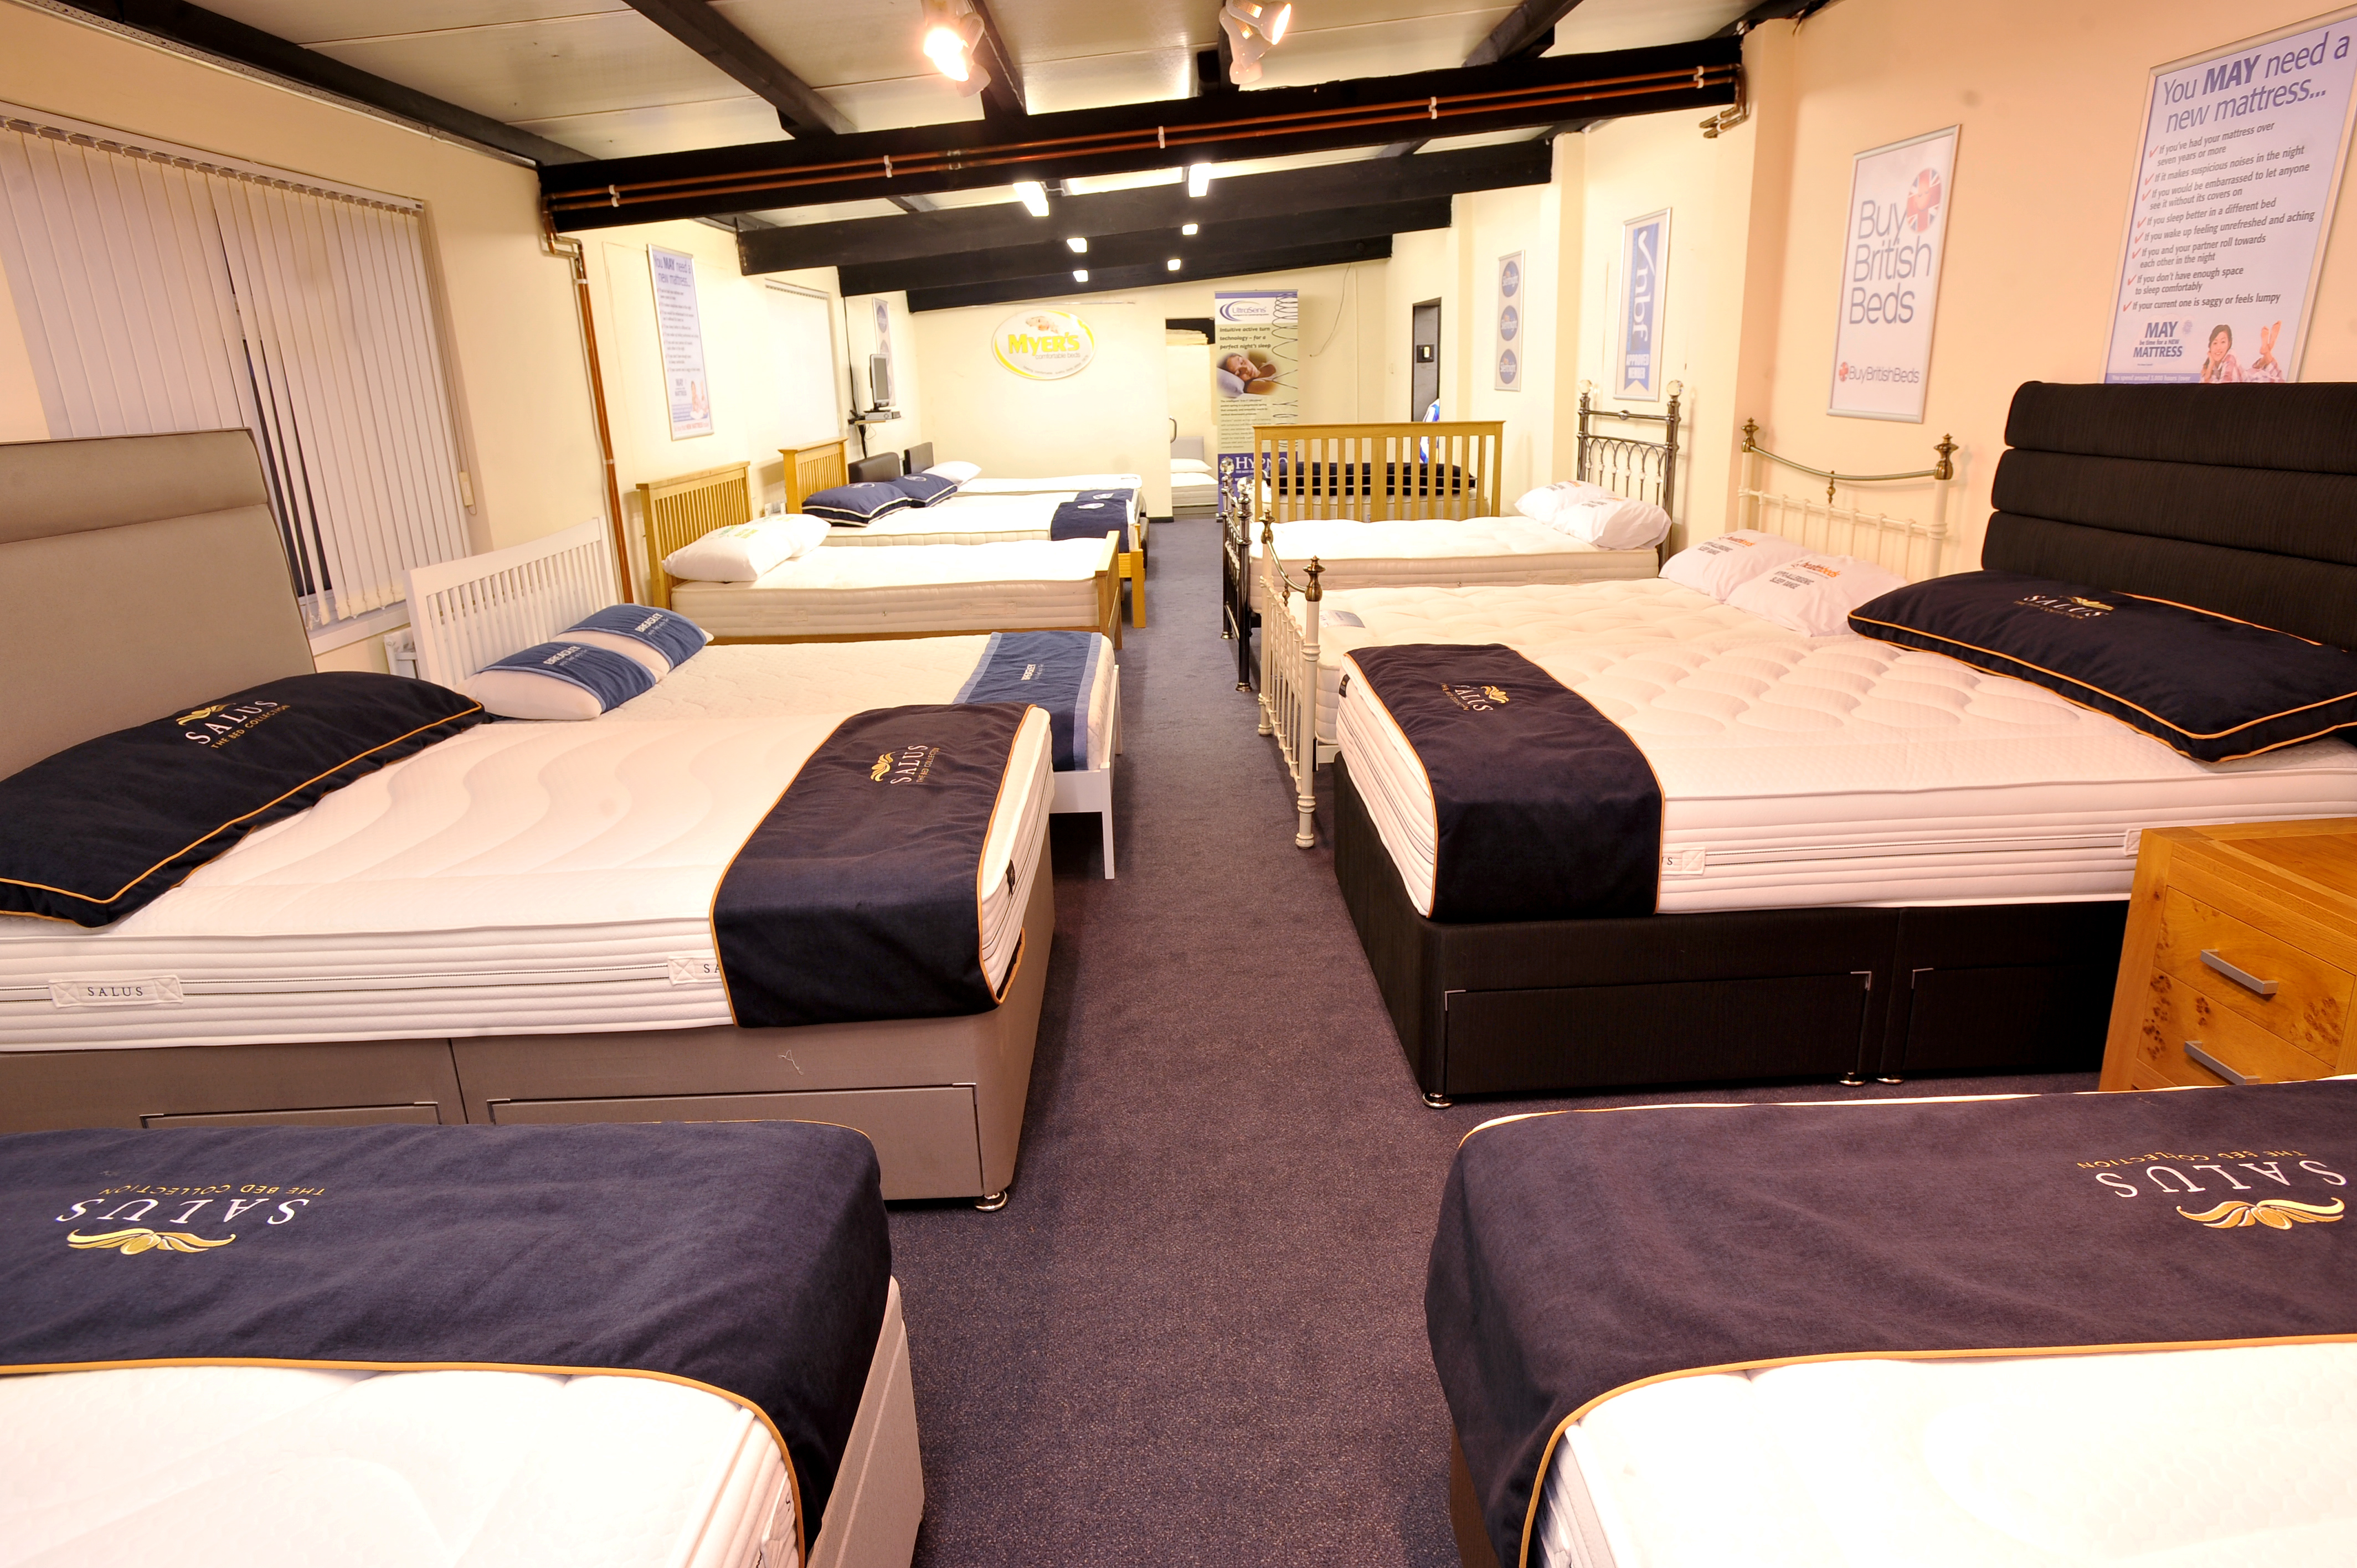 Bed Showrooms In Leicestershire